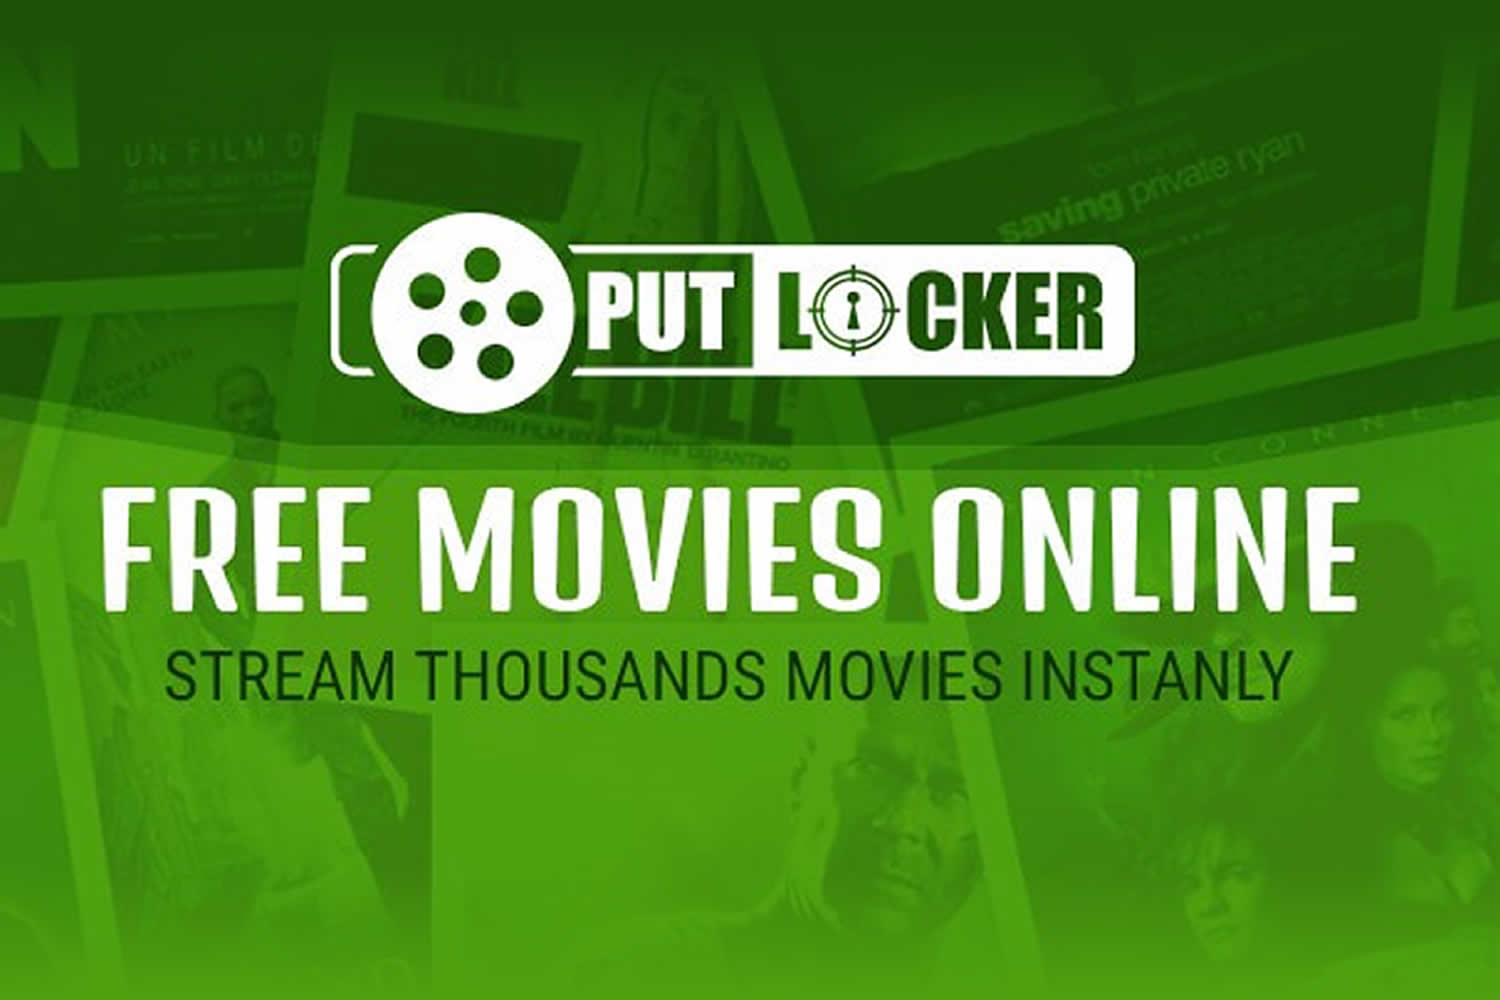 Watch Endabrechnung Putlocker Movies